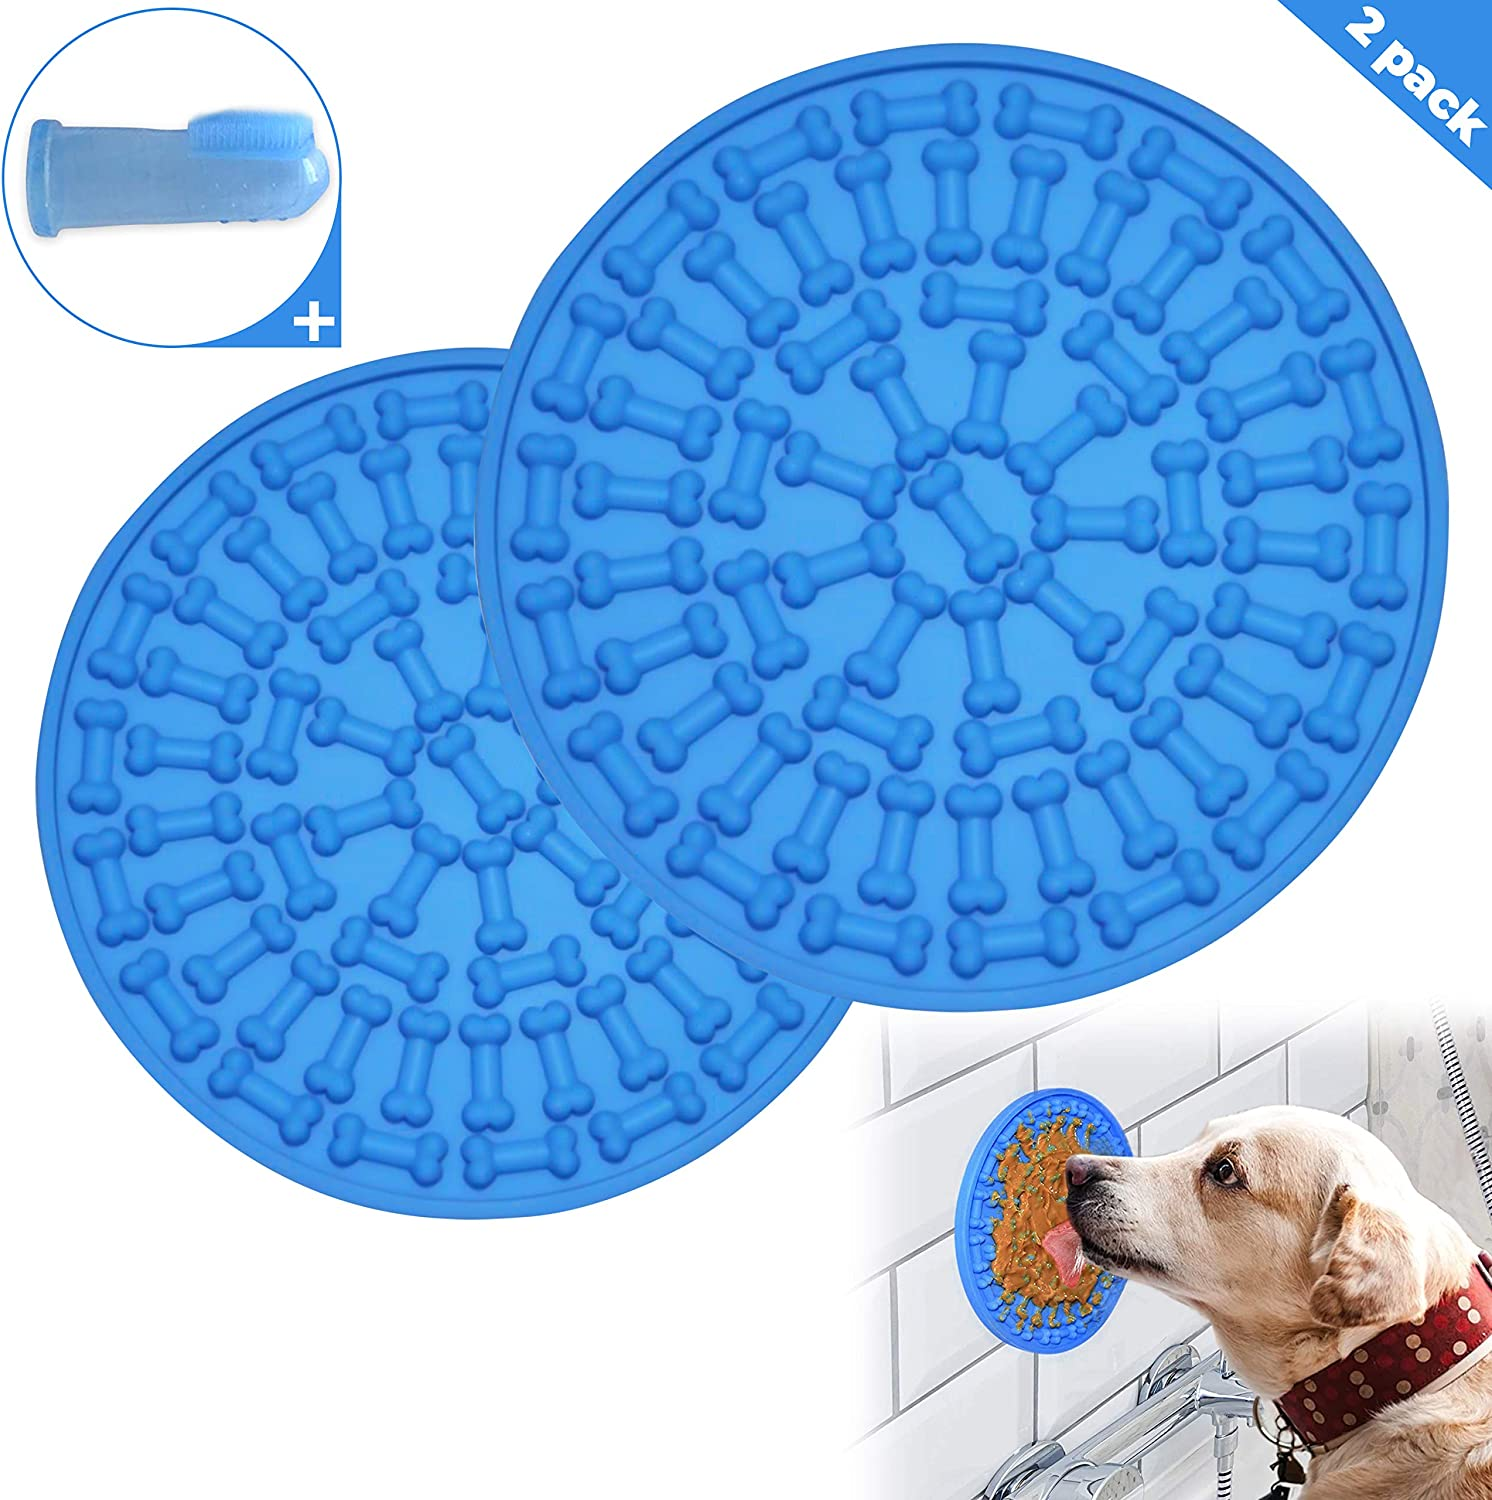 CM Dog Lick Mat Pad Plus Toothbrush, Washing Distraction Device,Slow Feeder Treat Dispensing Licking Mats Helps Hyper Pet for Anxiety Mental Stimulation Toy,Buddy Products Training Lickimat